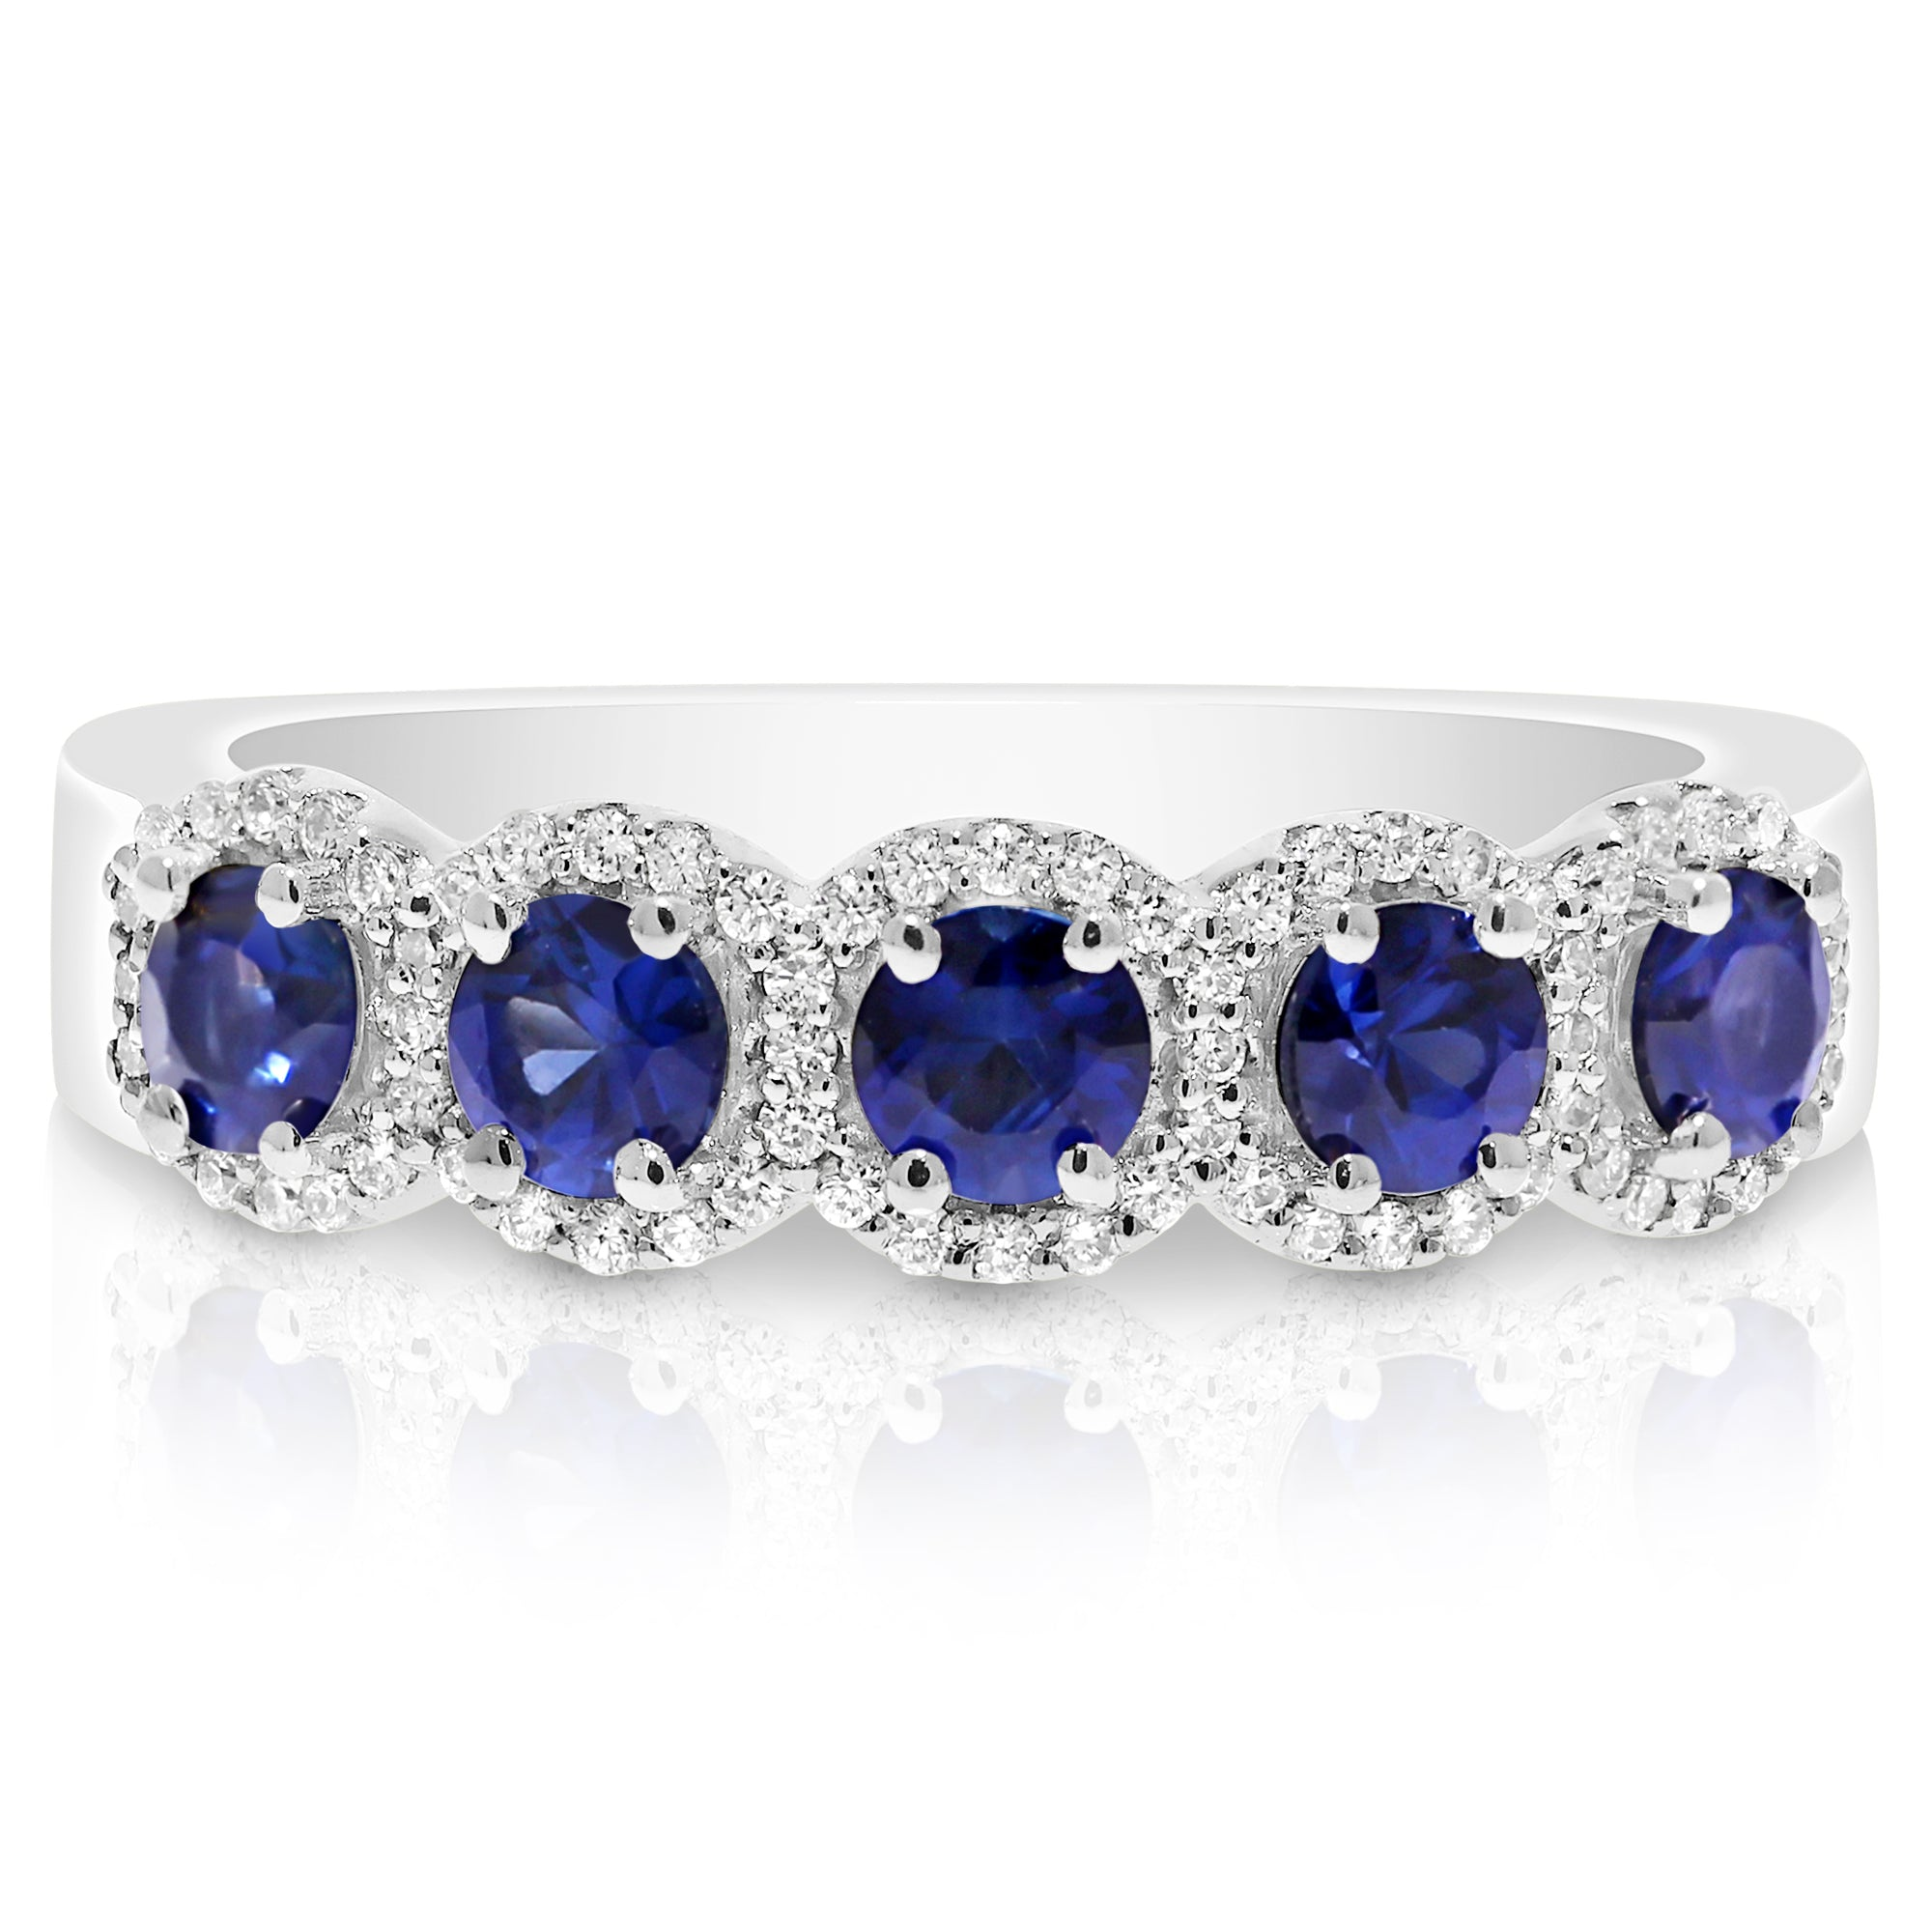 bands ring pave with diamond birks snowflake sapphire cluster pav en